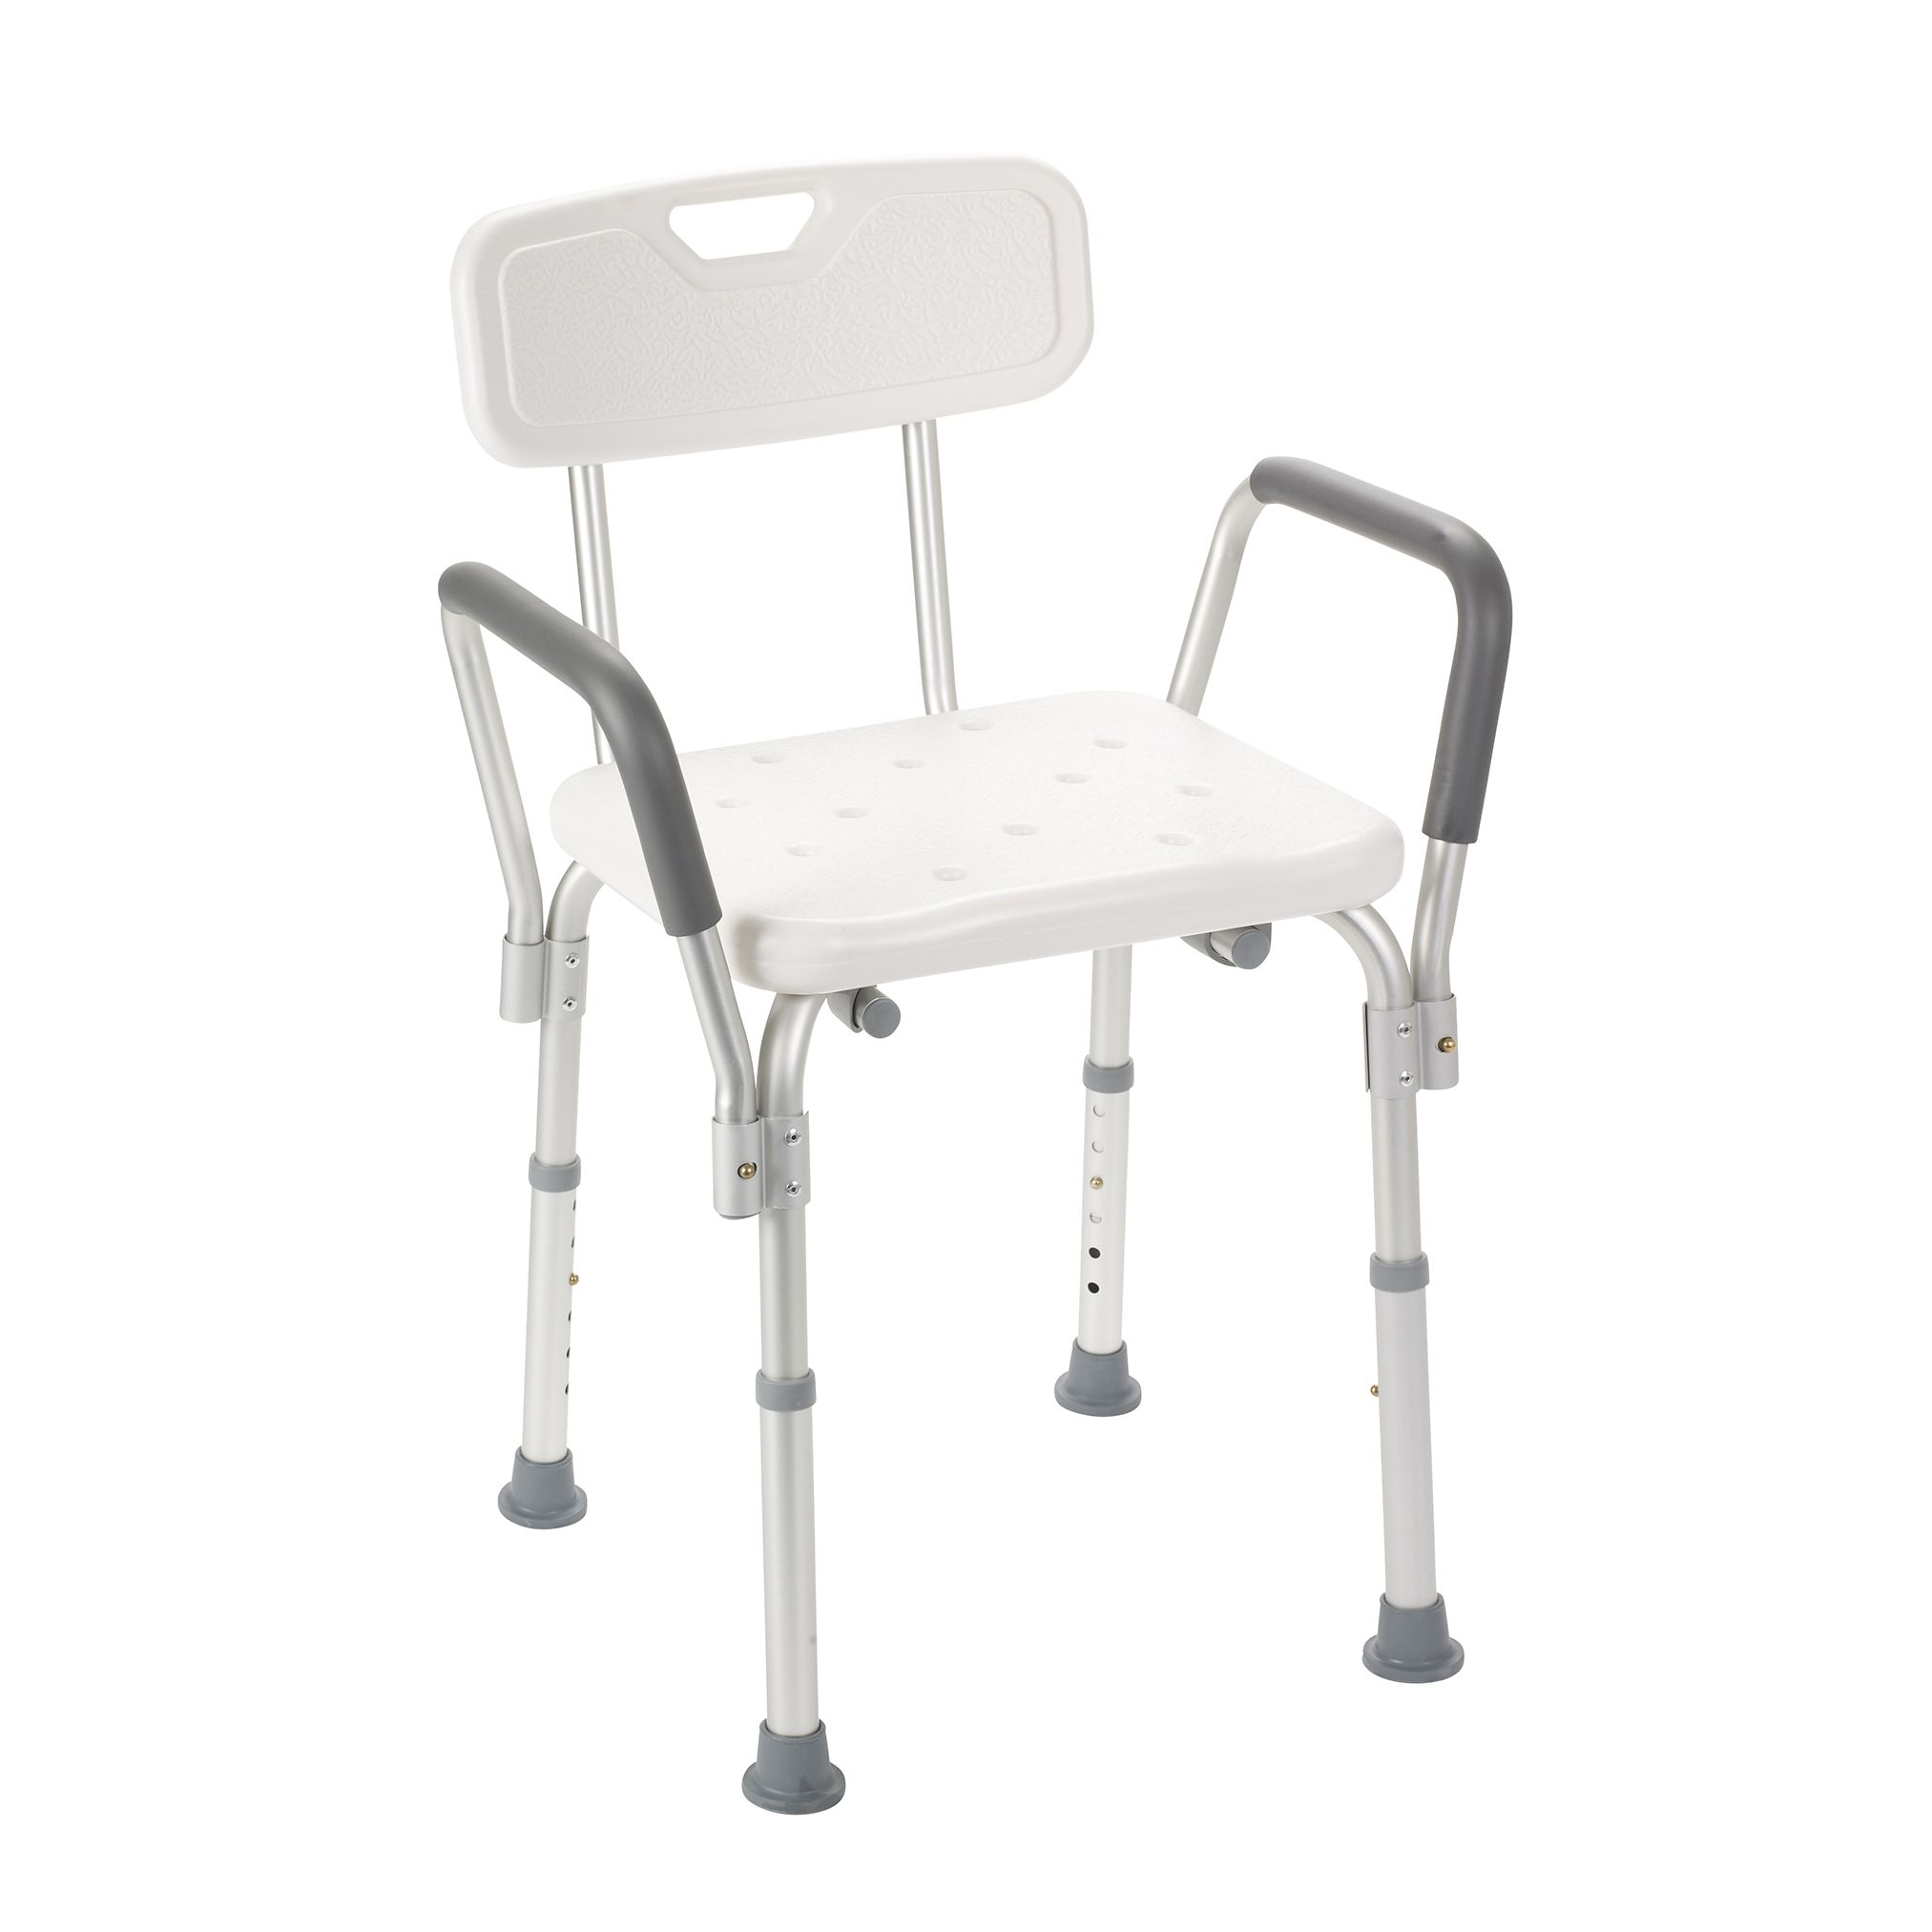 Bath Chair Shower Chair Shower Bench Bath Chair For Elderly